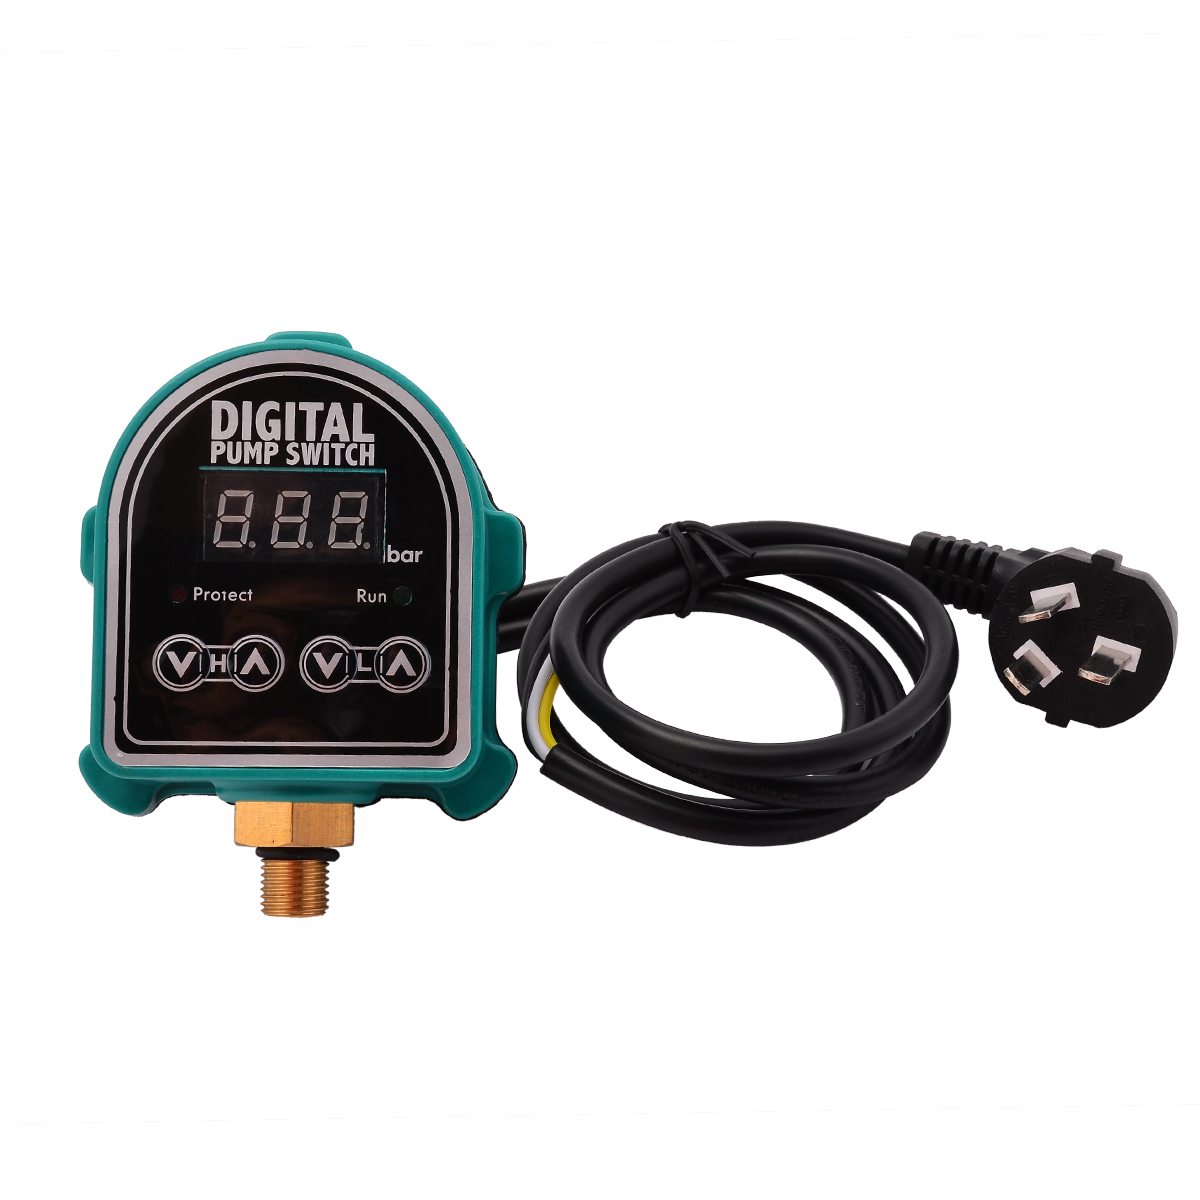 Mayitr 220V Digital LCD Water Pumps Pressure Switch Garden Gas Eletronic Controller Control Switch For Water Pump SuppliesMayitr 220V Digital LCD Water Pumps Pressure Switch Garden Gas Eletronic Controller Control Switch For Water Pump Supplies